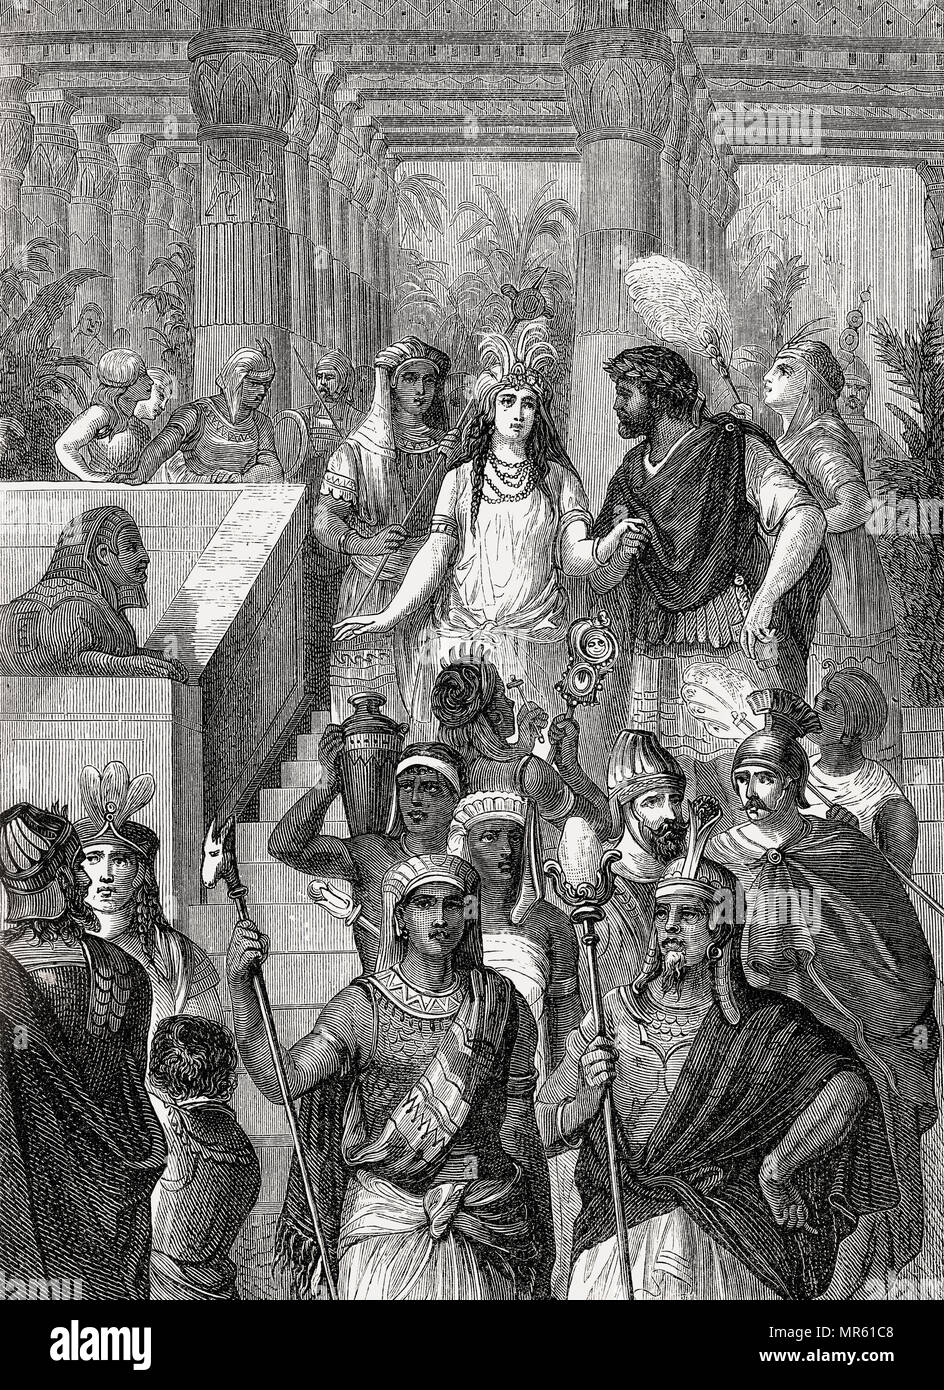 Wedding of Masinissa, c.238 BC – 148 BC, the first King of Numidia and Sophonisba, a Carthaginian noblewoman - Stock Image